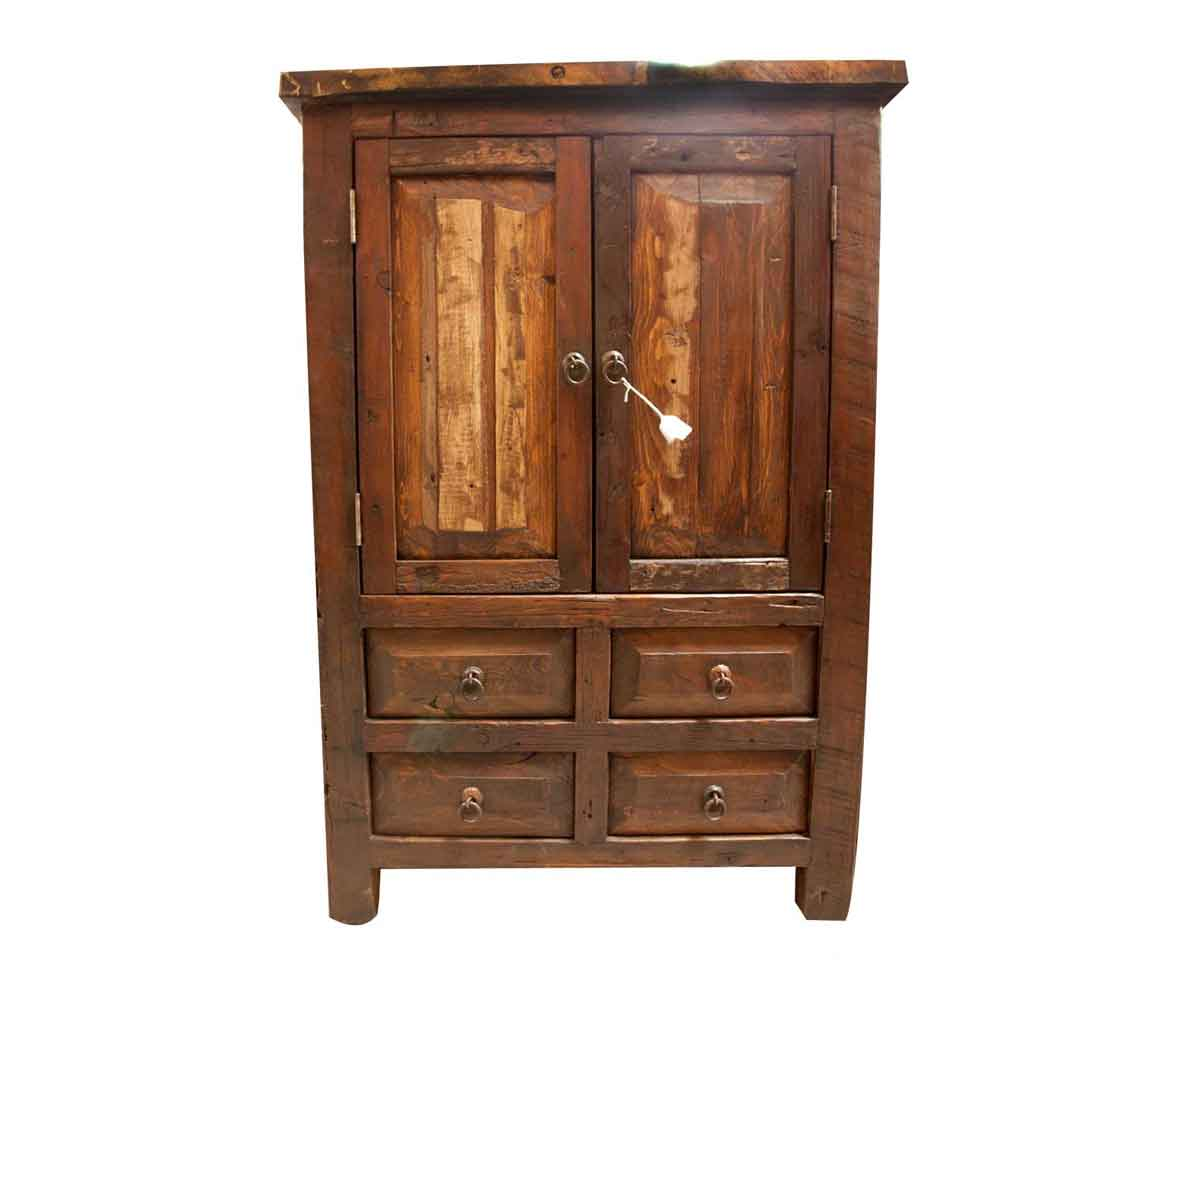 Charmant Reclaimed Wood Cabinet